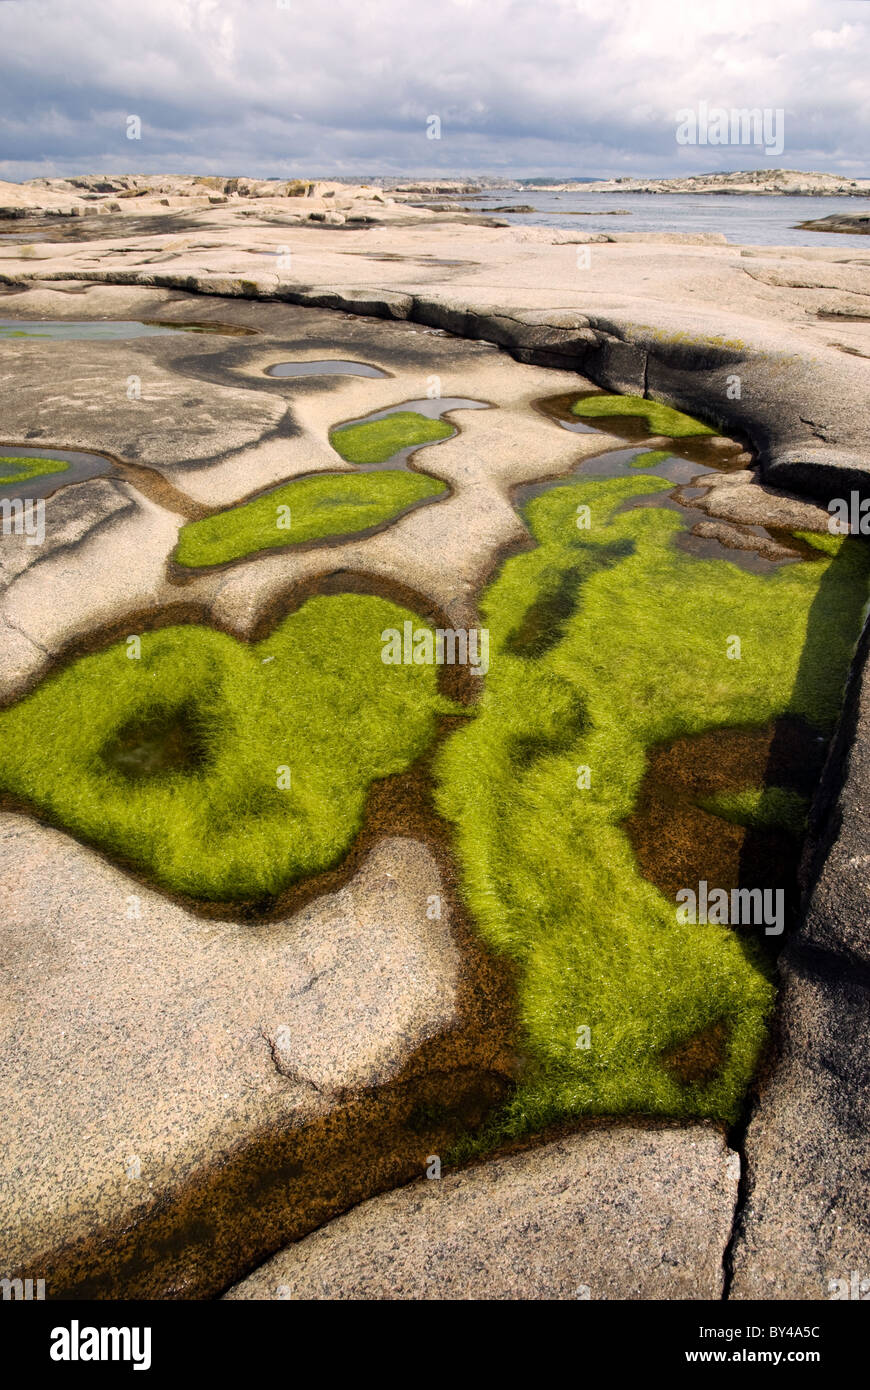 Green algae grow in puddles on a small glacially-shaped island of smooth, pink granite, west coast of Sweden - Stock Image